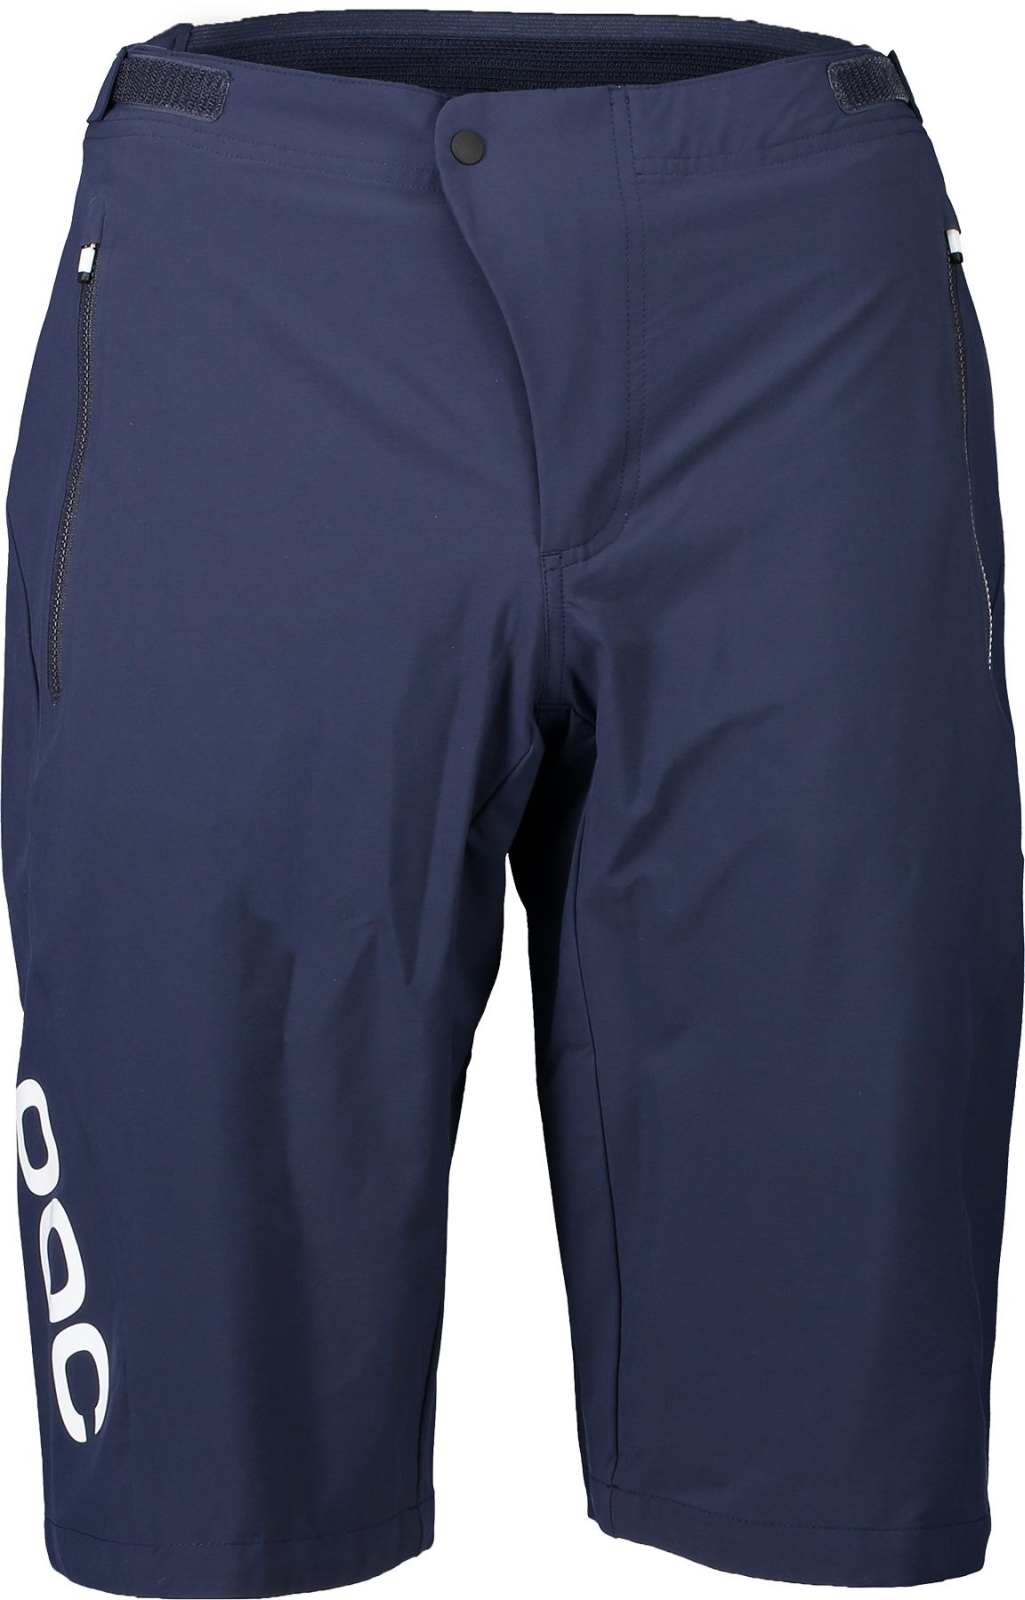 POC Essential Enduro Shorts - Turmaline Navy XL